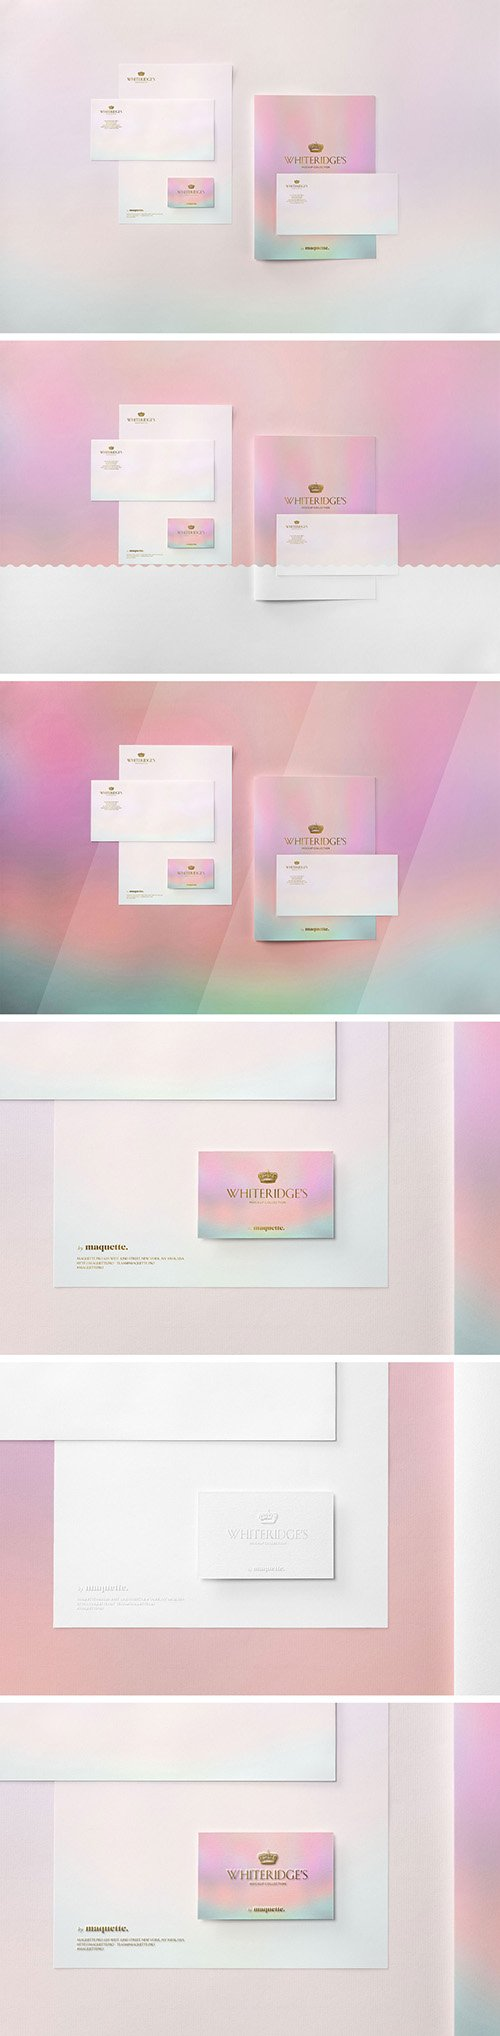 Luxury Gold-Embossed Corporate Stationery Mockup 7 130430184 PSDT